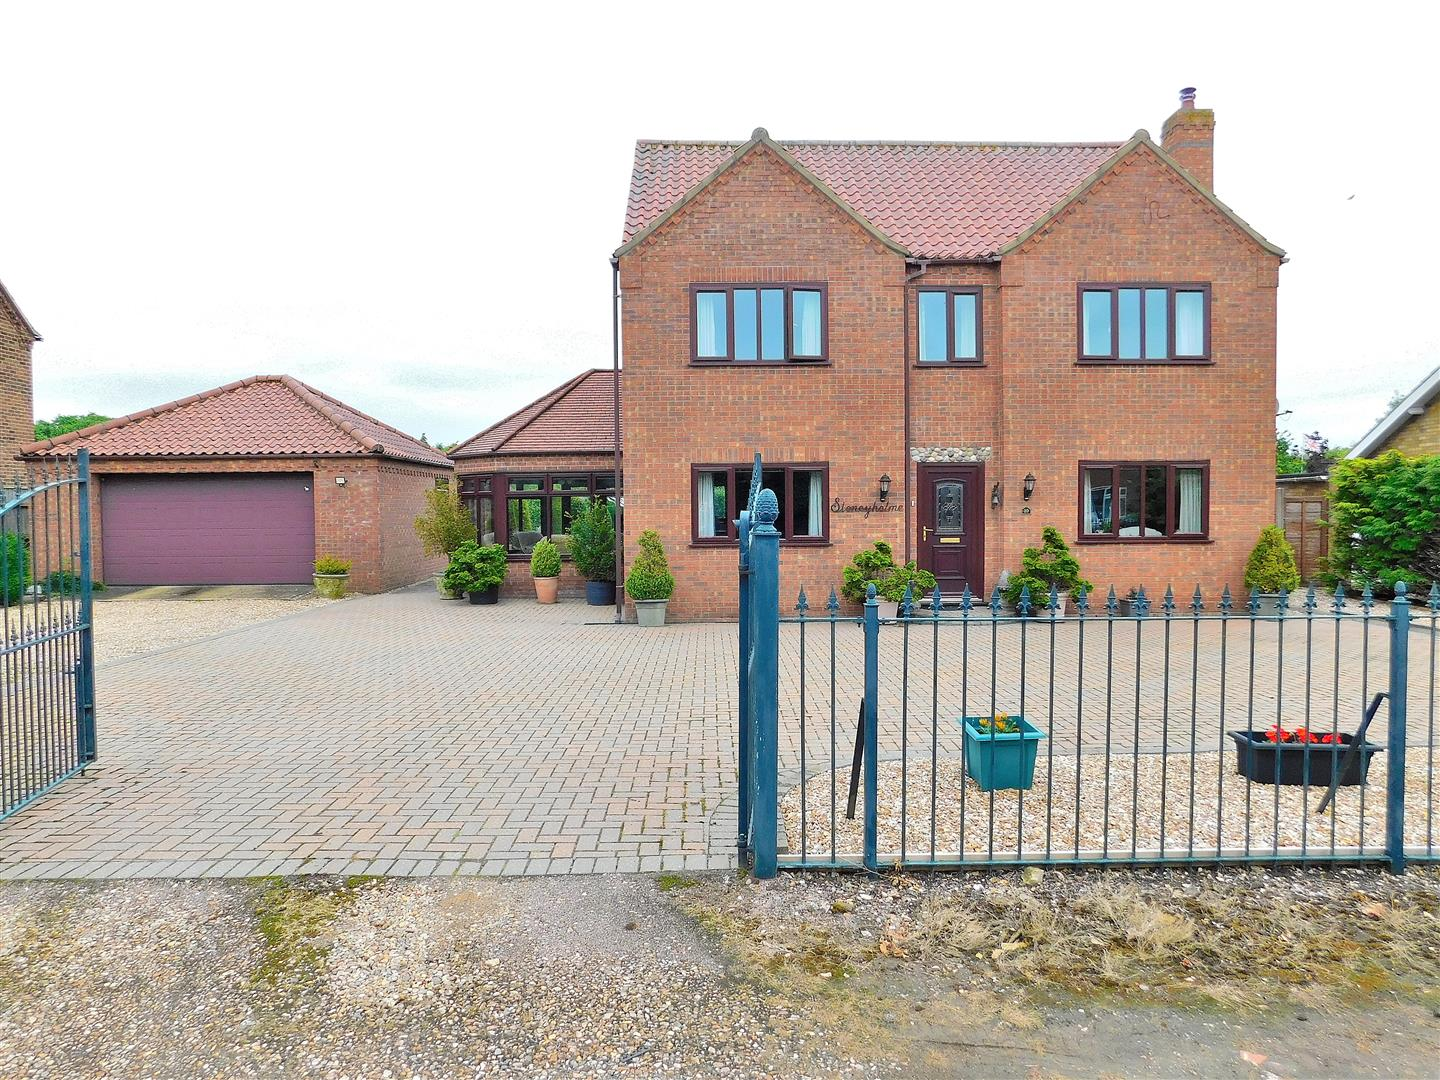 3 bed detached house for sale in Popes Lane, King's Lynn  - Property Image 1